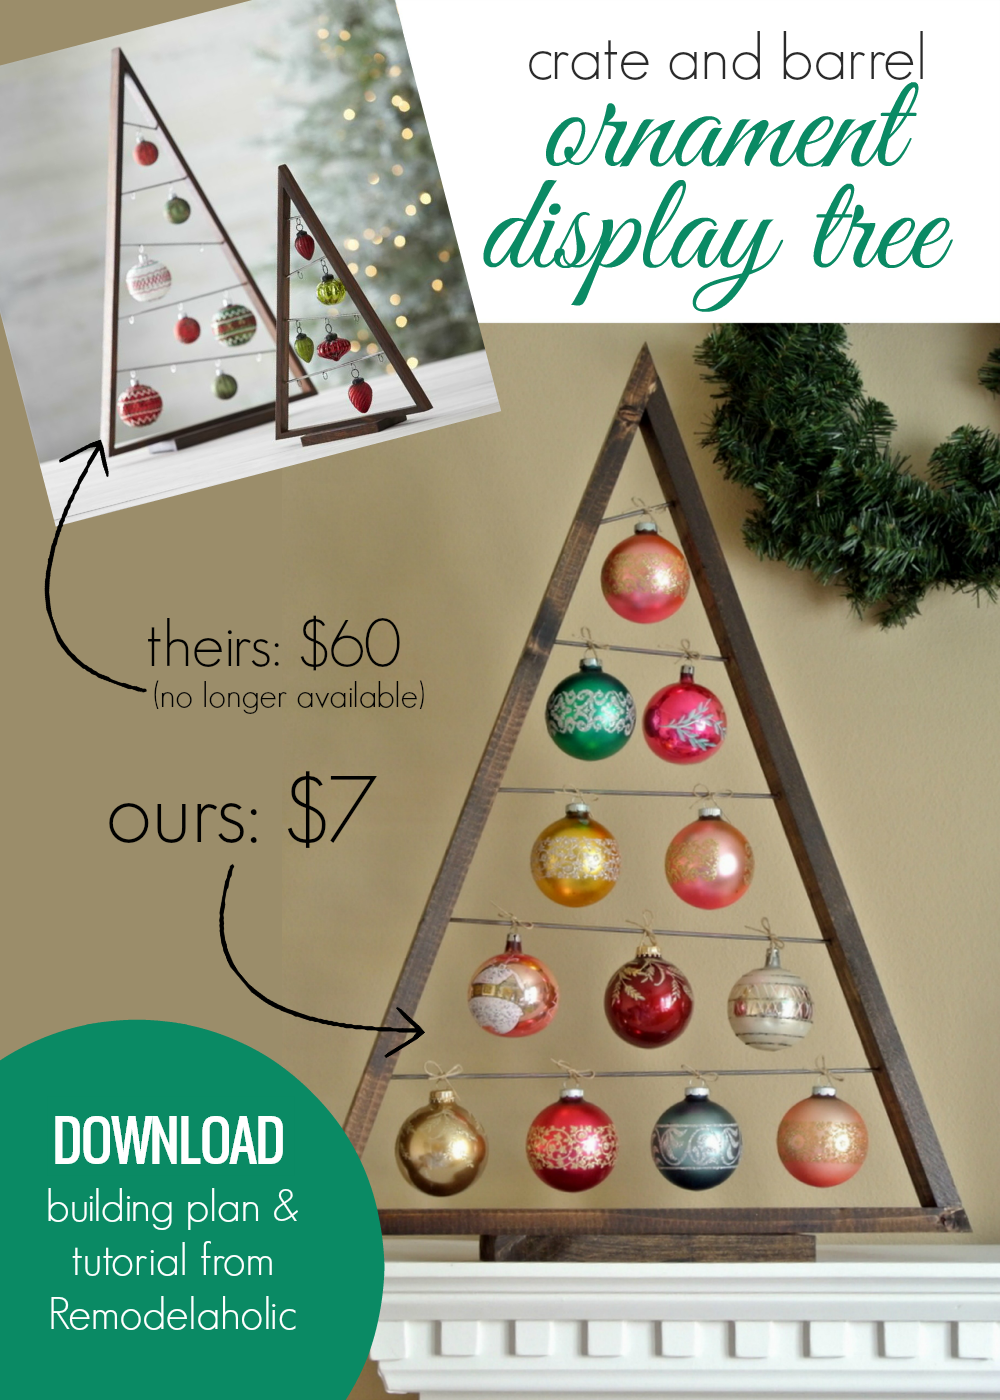 Build Your Own Wooden Ornament Display Tree For Under 10 Easy Download Woodworking Plans Perf Ornament Tree Display Ornament Display Diy Christmas Ornaments